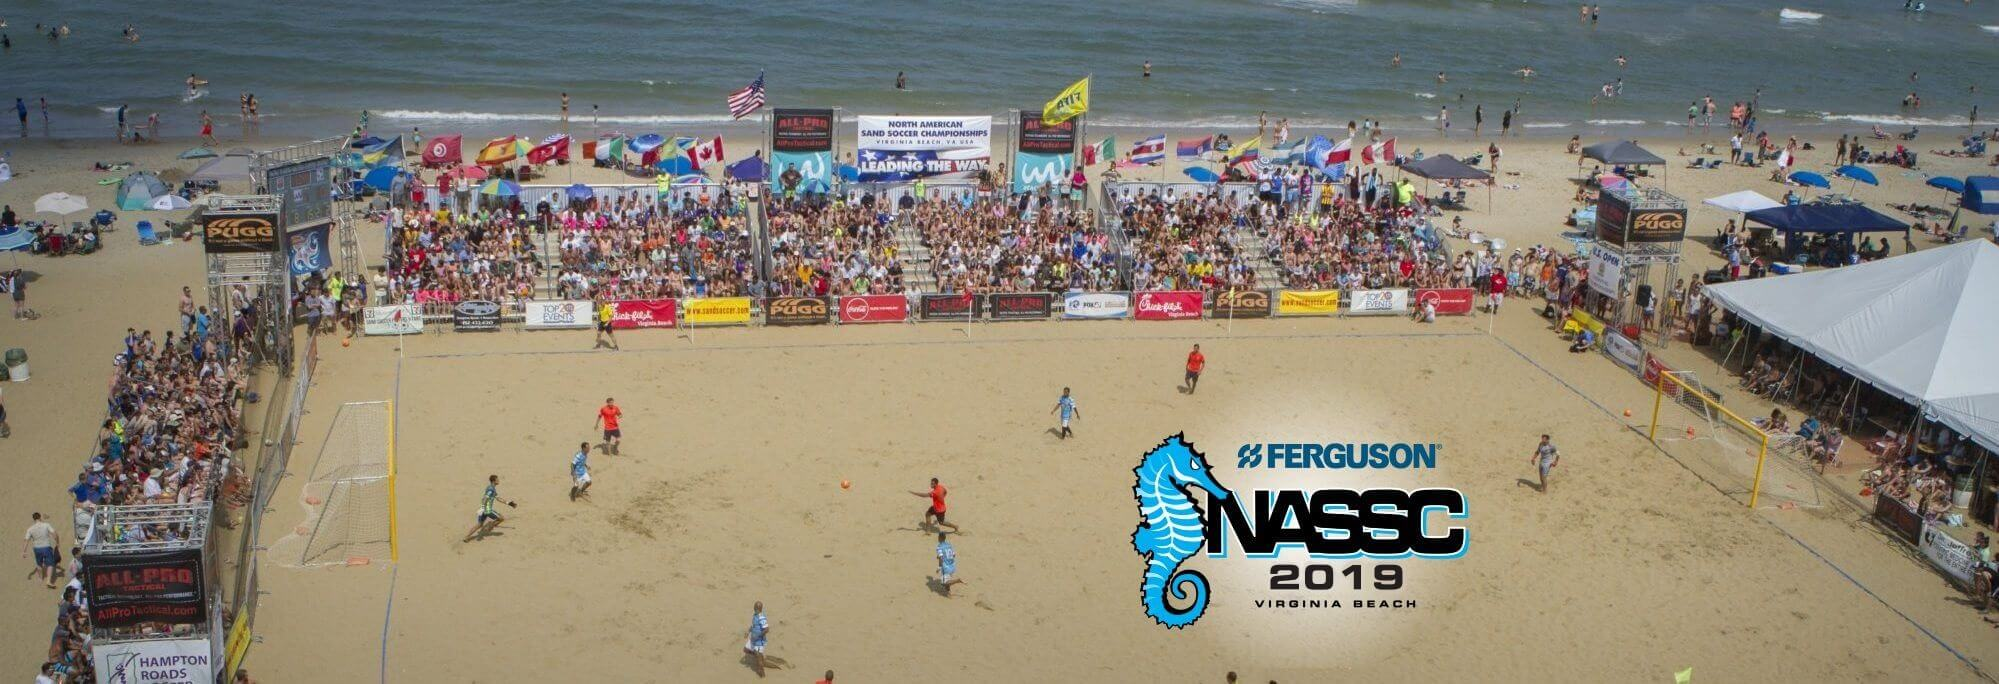 Welcome To Nc The 26th North American Sand Soccer Championships In Beautiful Virginia Beach